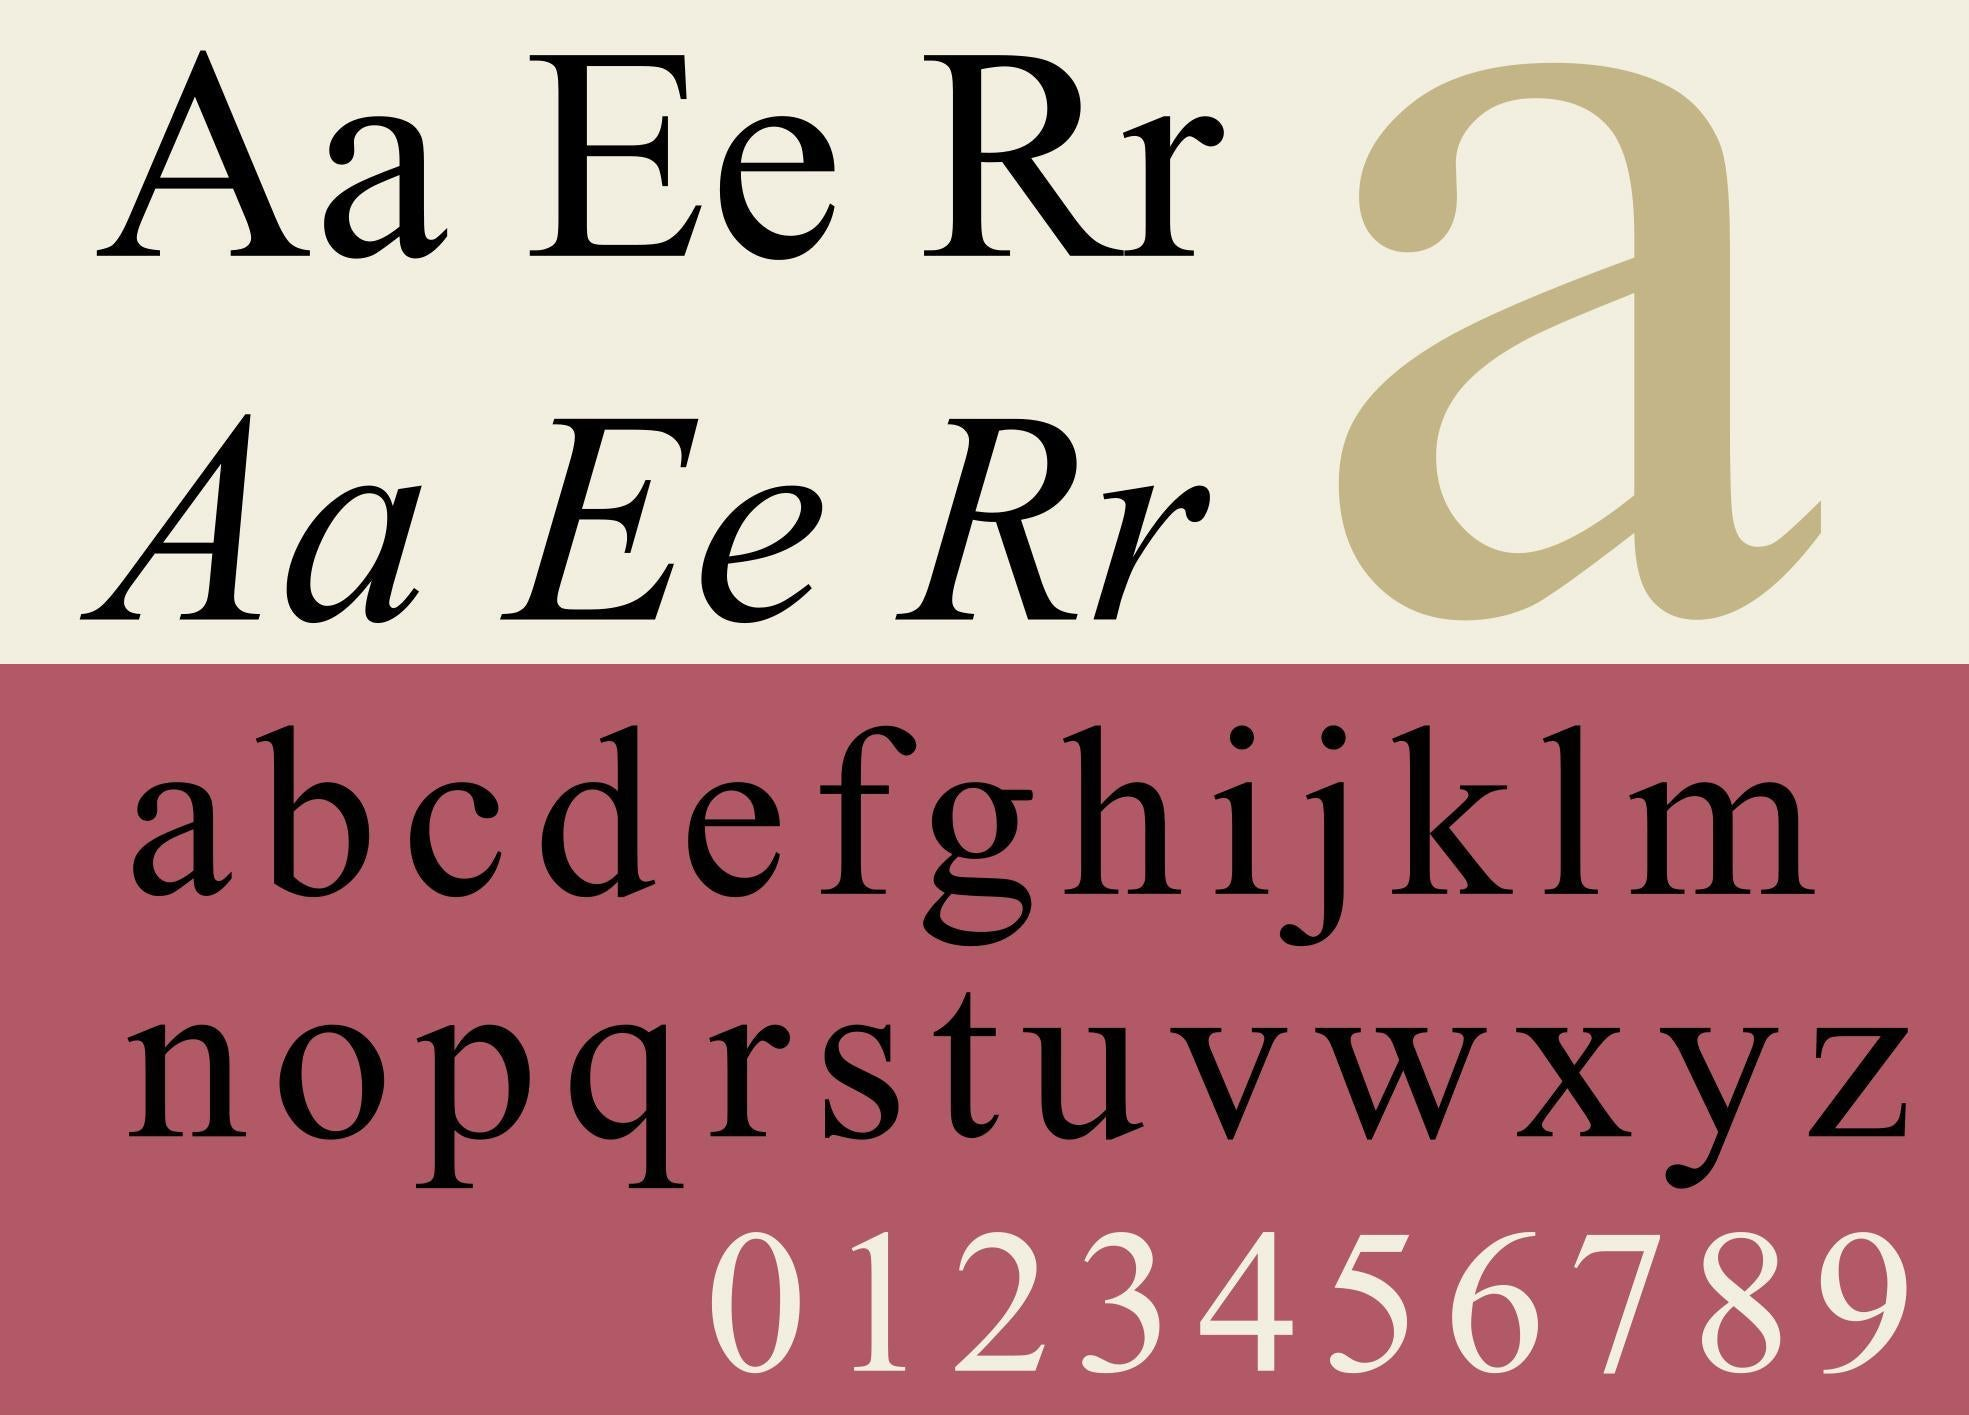 Times New Roman Is The Most Trustworthy Font Study Finds